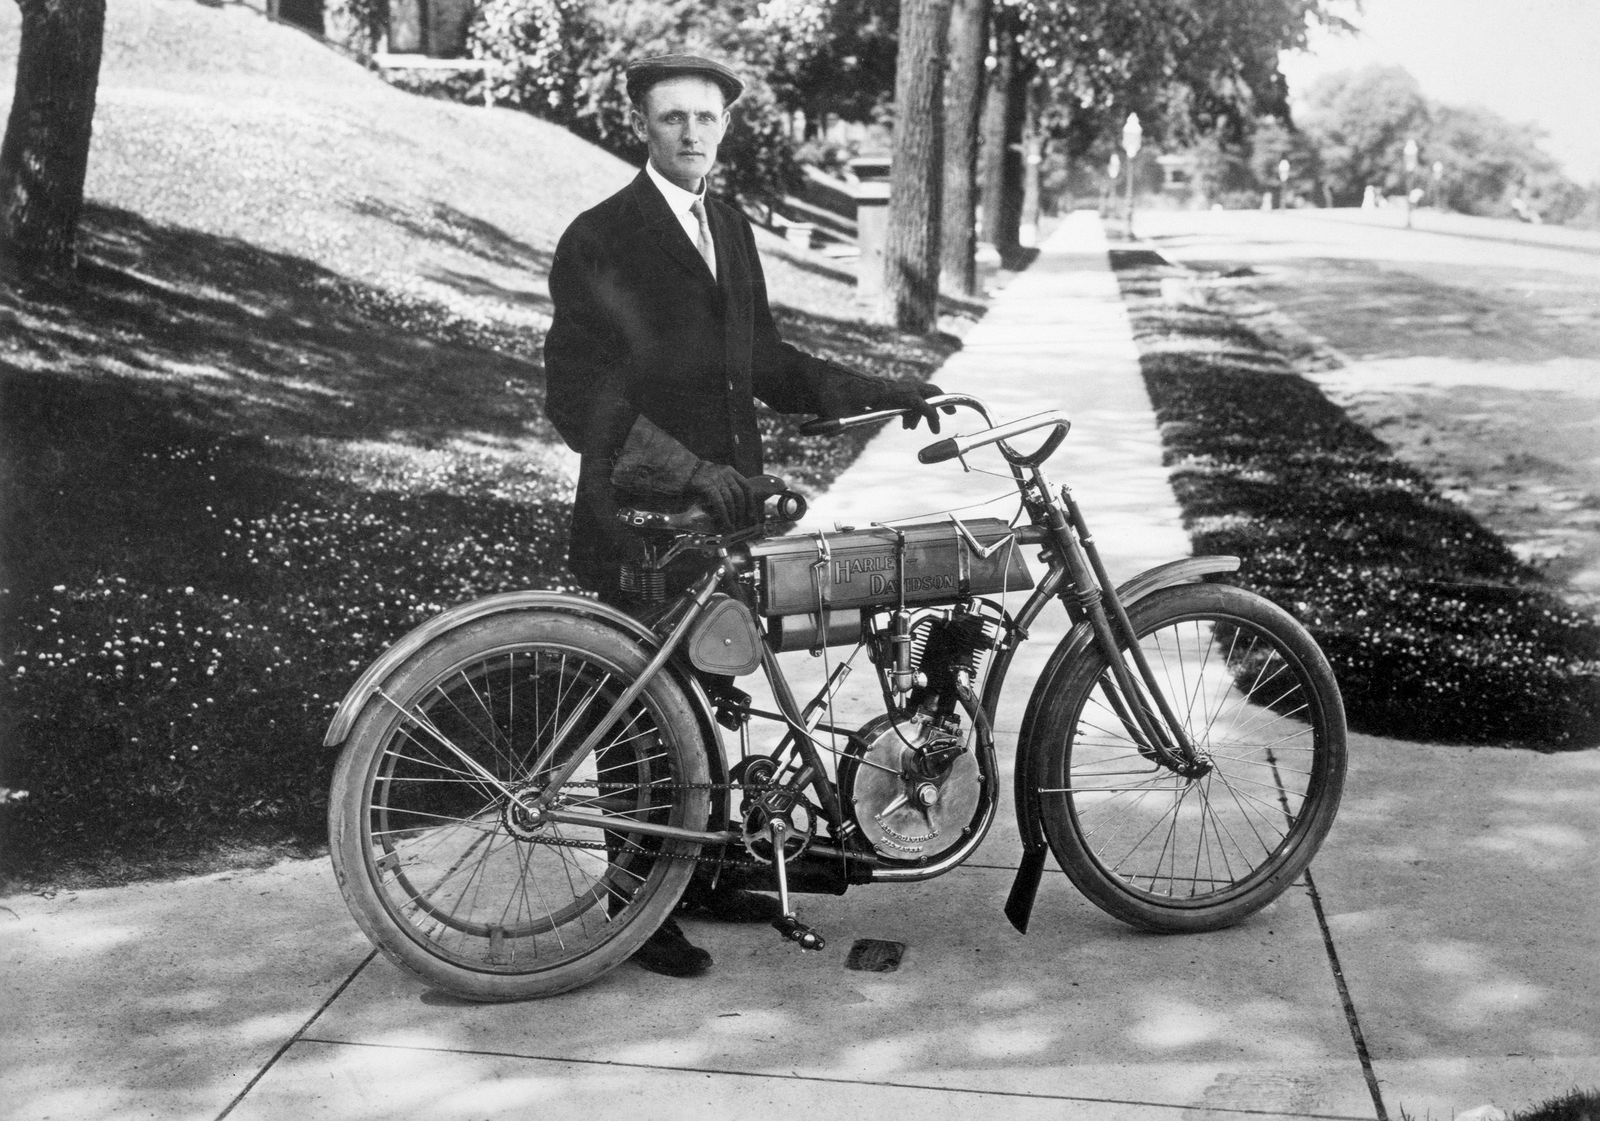 Walter Davidson Poses With His Bike